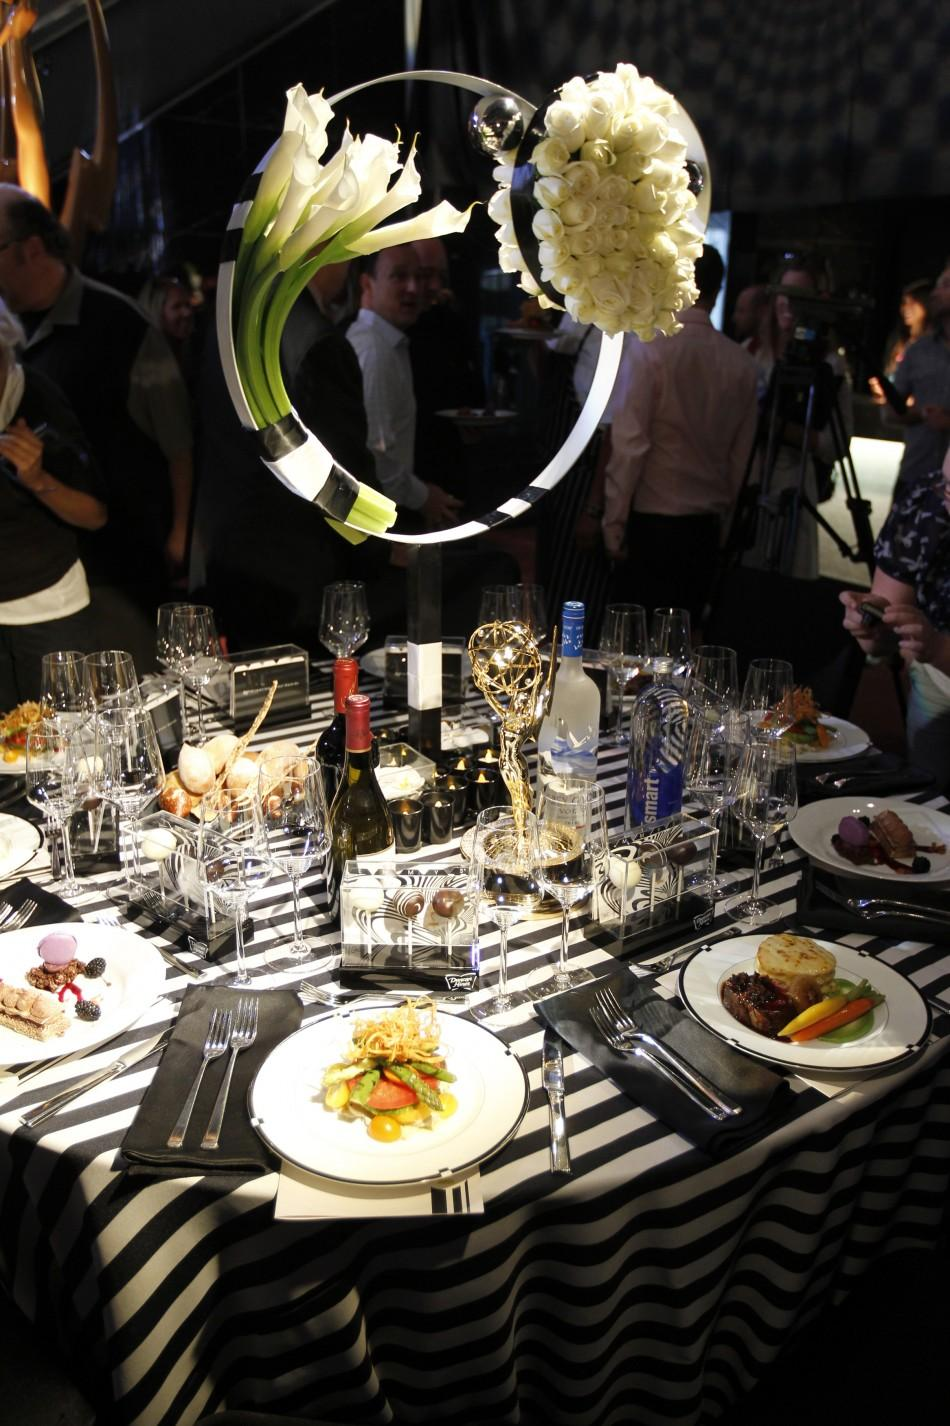 An Emmy statuette is pictured on the table presenting the table setting and theme, mod illusions, and salad course featuring heirloom tomatoes for the 2011 Creative Arts and 63rd Primetime Emmy Awards Governors Ball during a press preview in North Hollywo